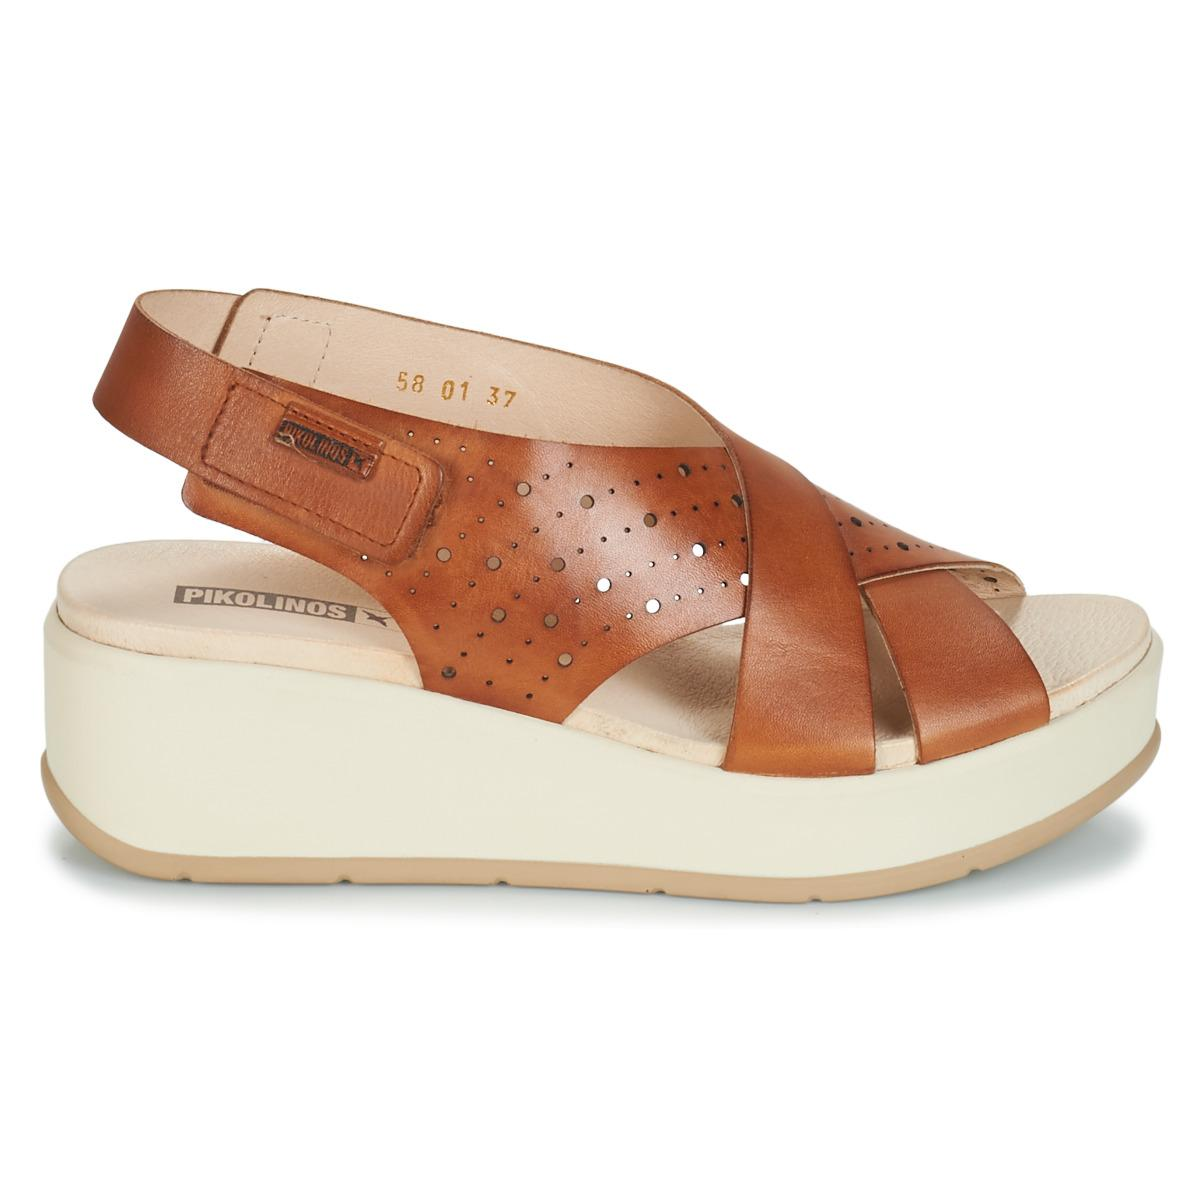 Brown W3x In Pikolinos Costacabana Women's Sandals 5LRq34Aj